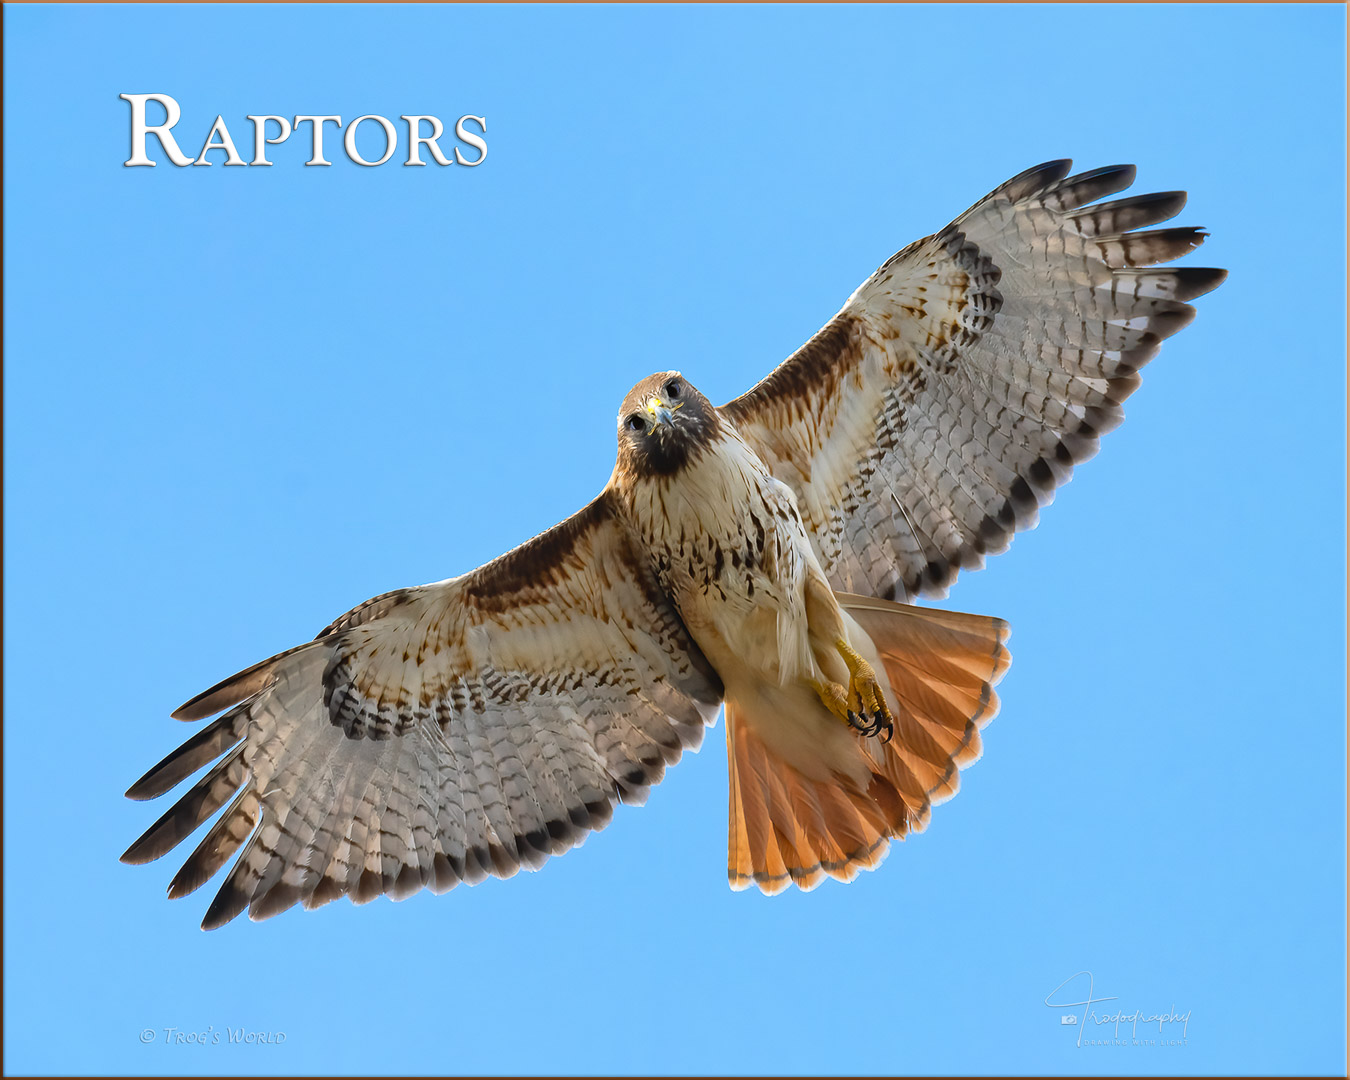 Red-tailed Hawk looks down while in flight